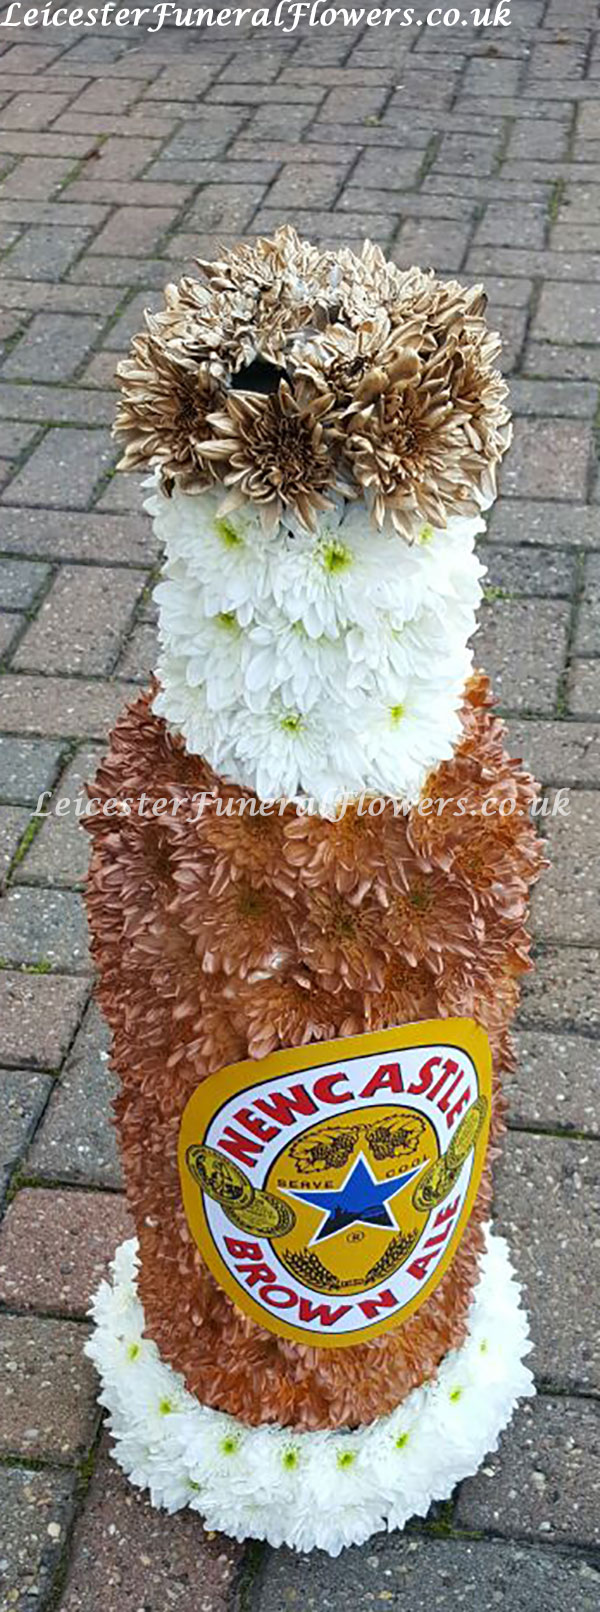 Newcastle brown ale special funeral tribute funeral flowers leicester izmirmasajfo